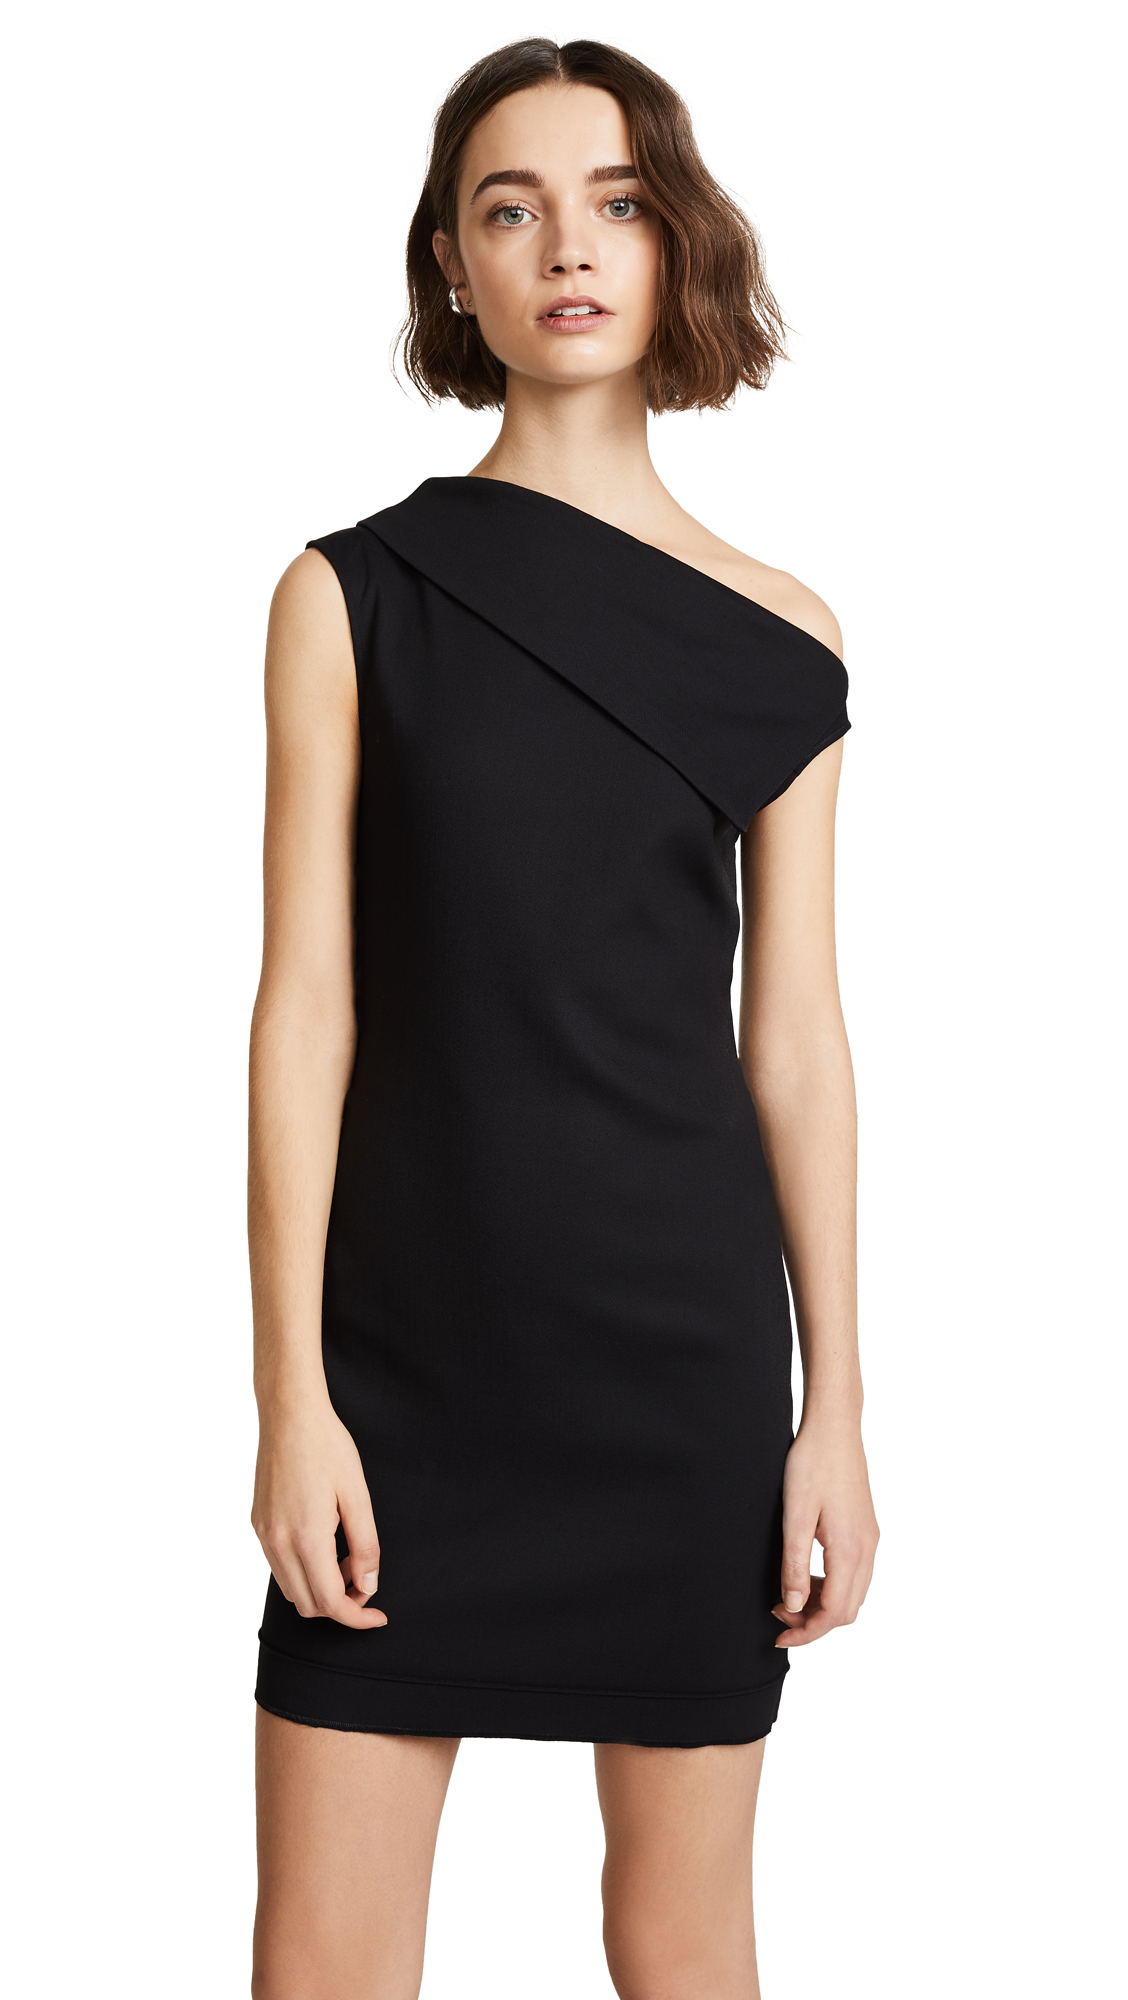 Helmut Lang Asymmetrical Mini Dress - Black